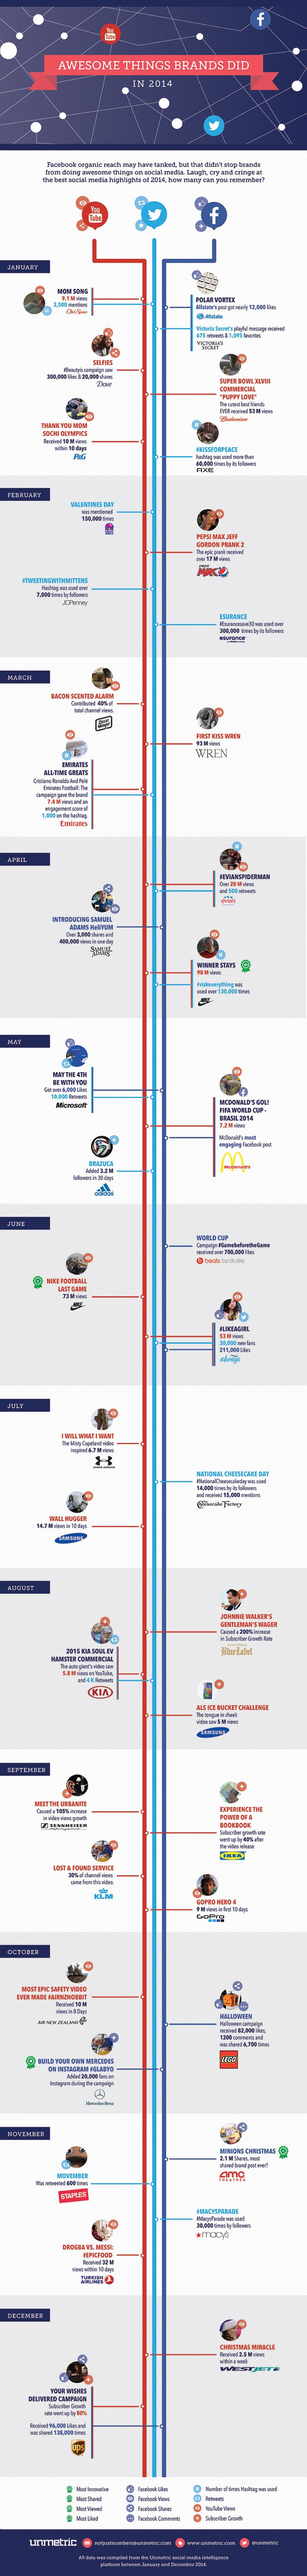 Awesome Things Brands Did On YouTube, Facebook and Twitter In 2014 - #infographic